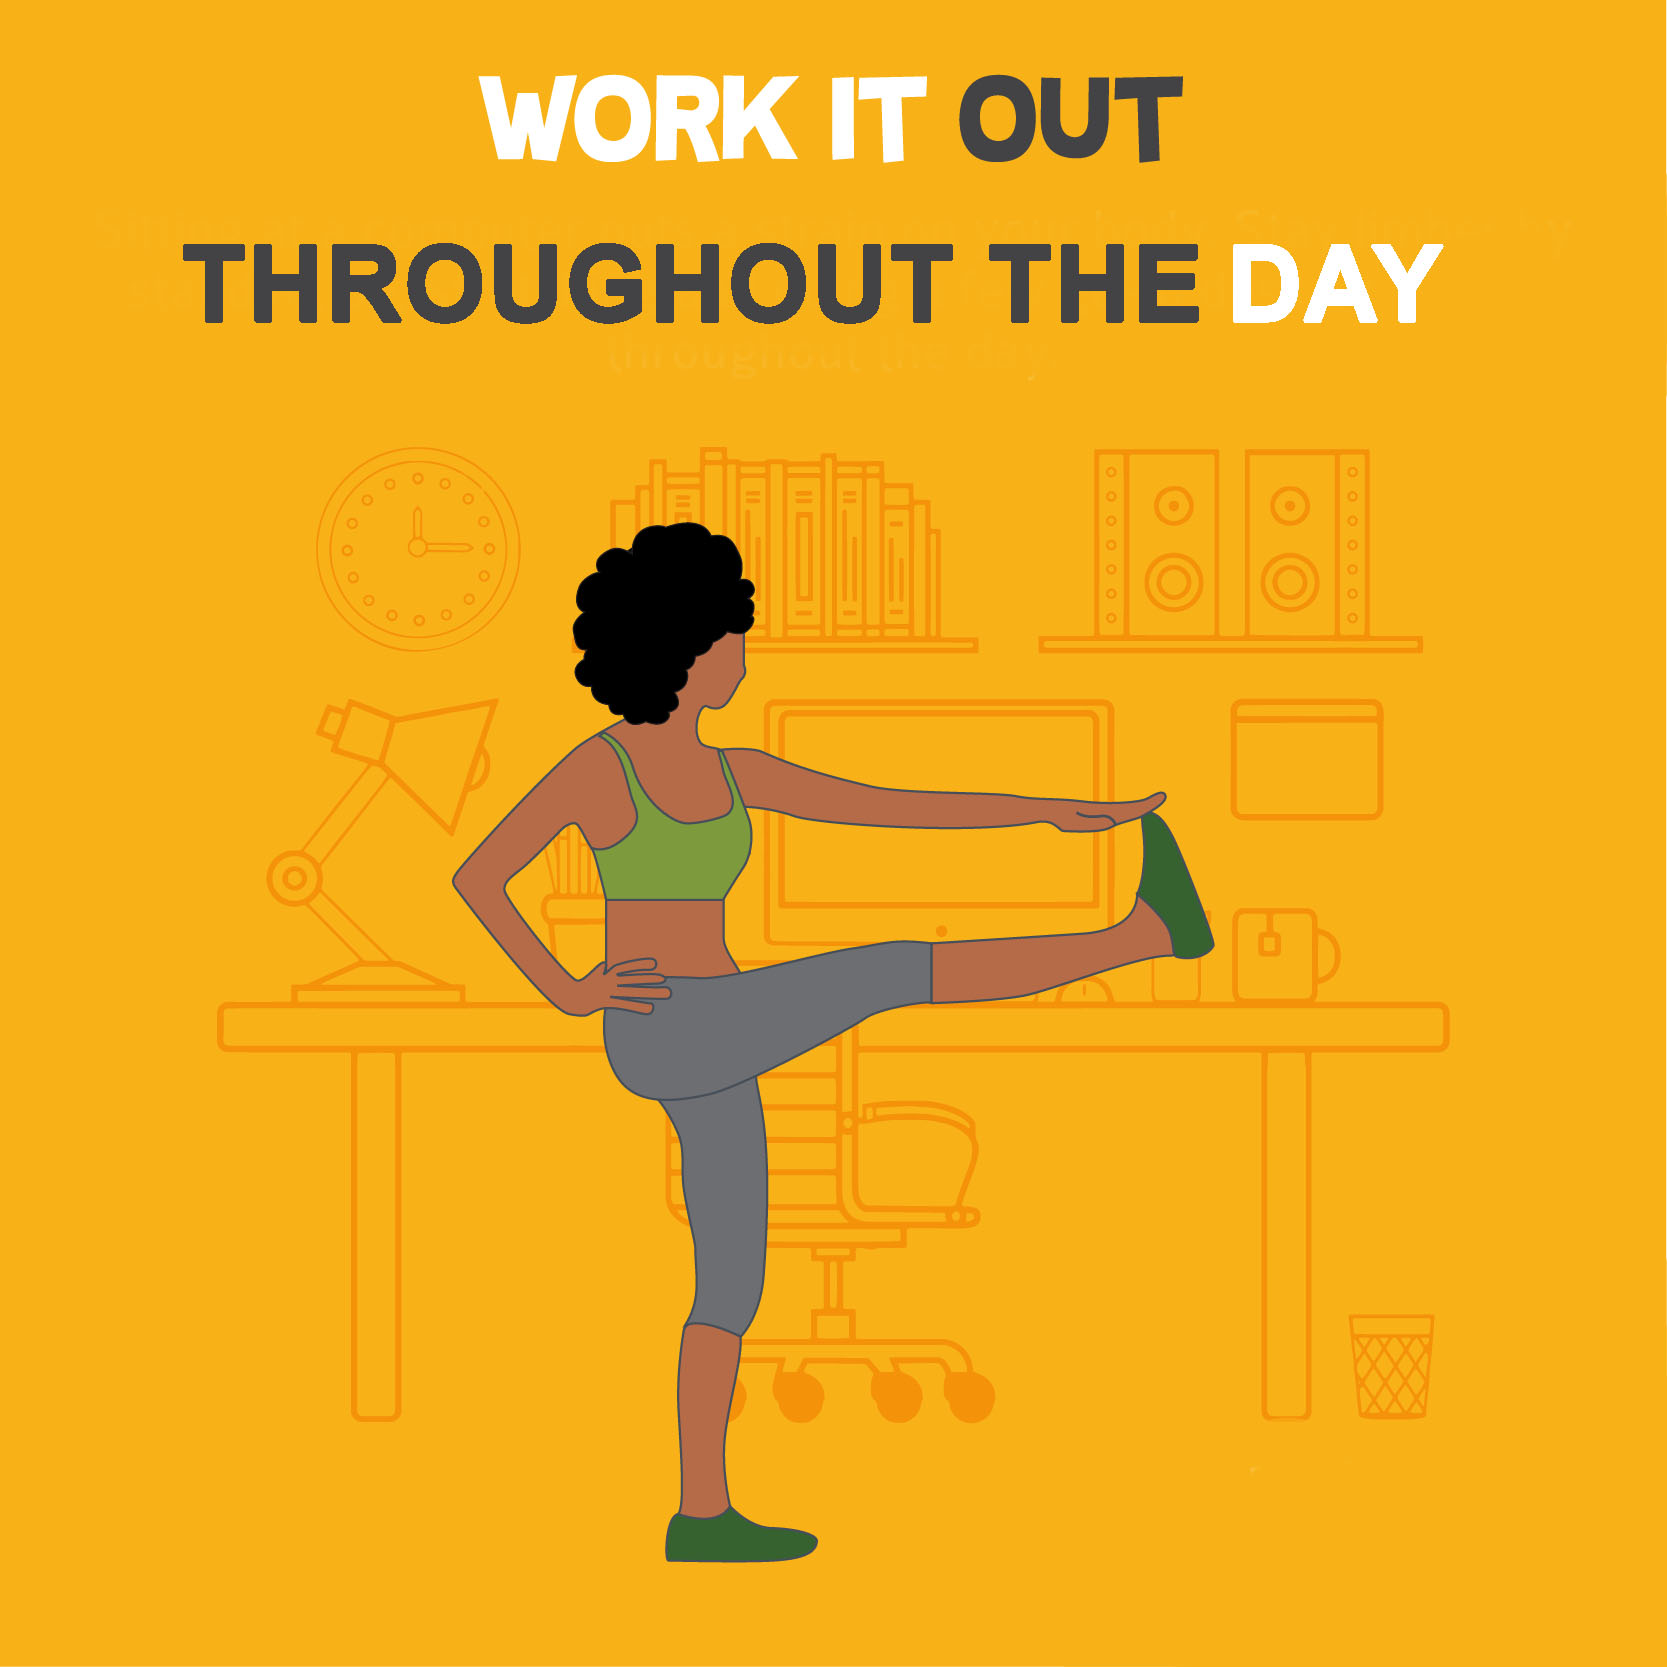 Working out throughout the day